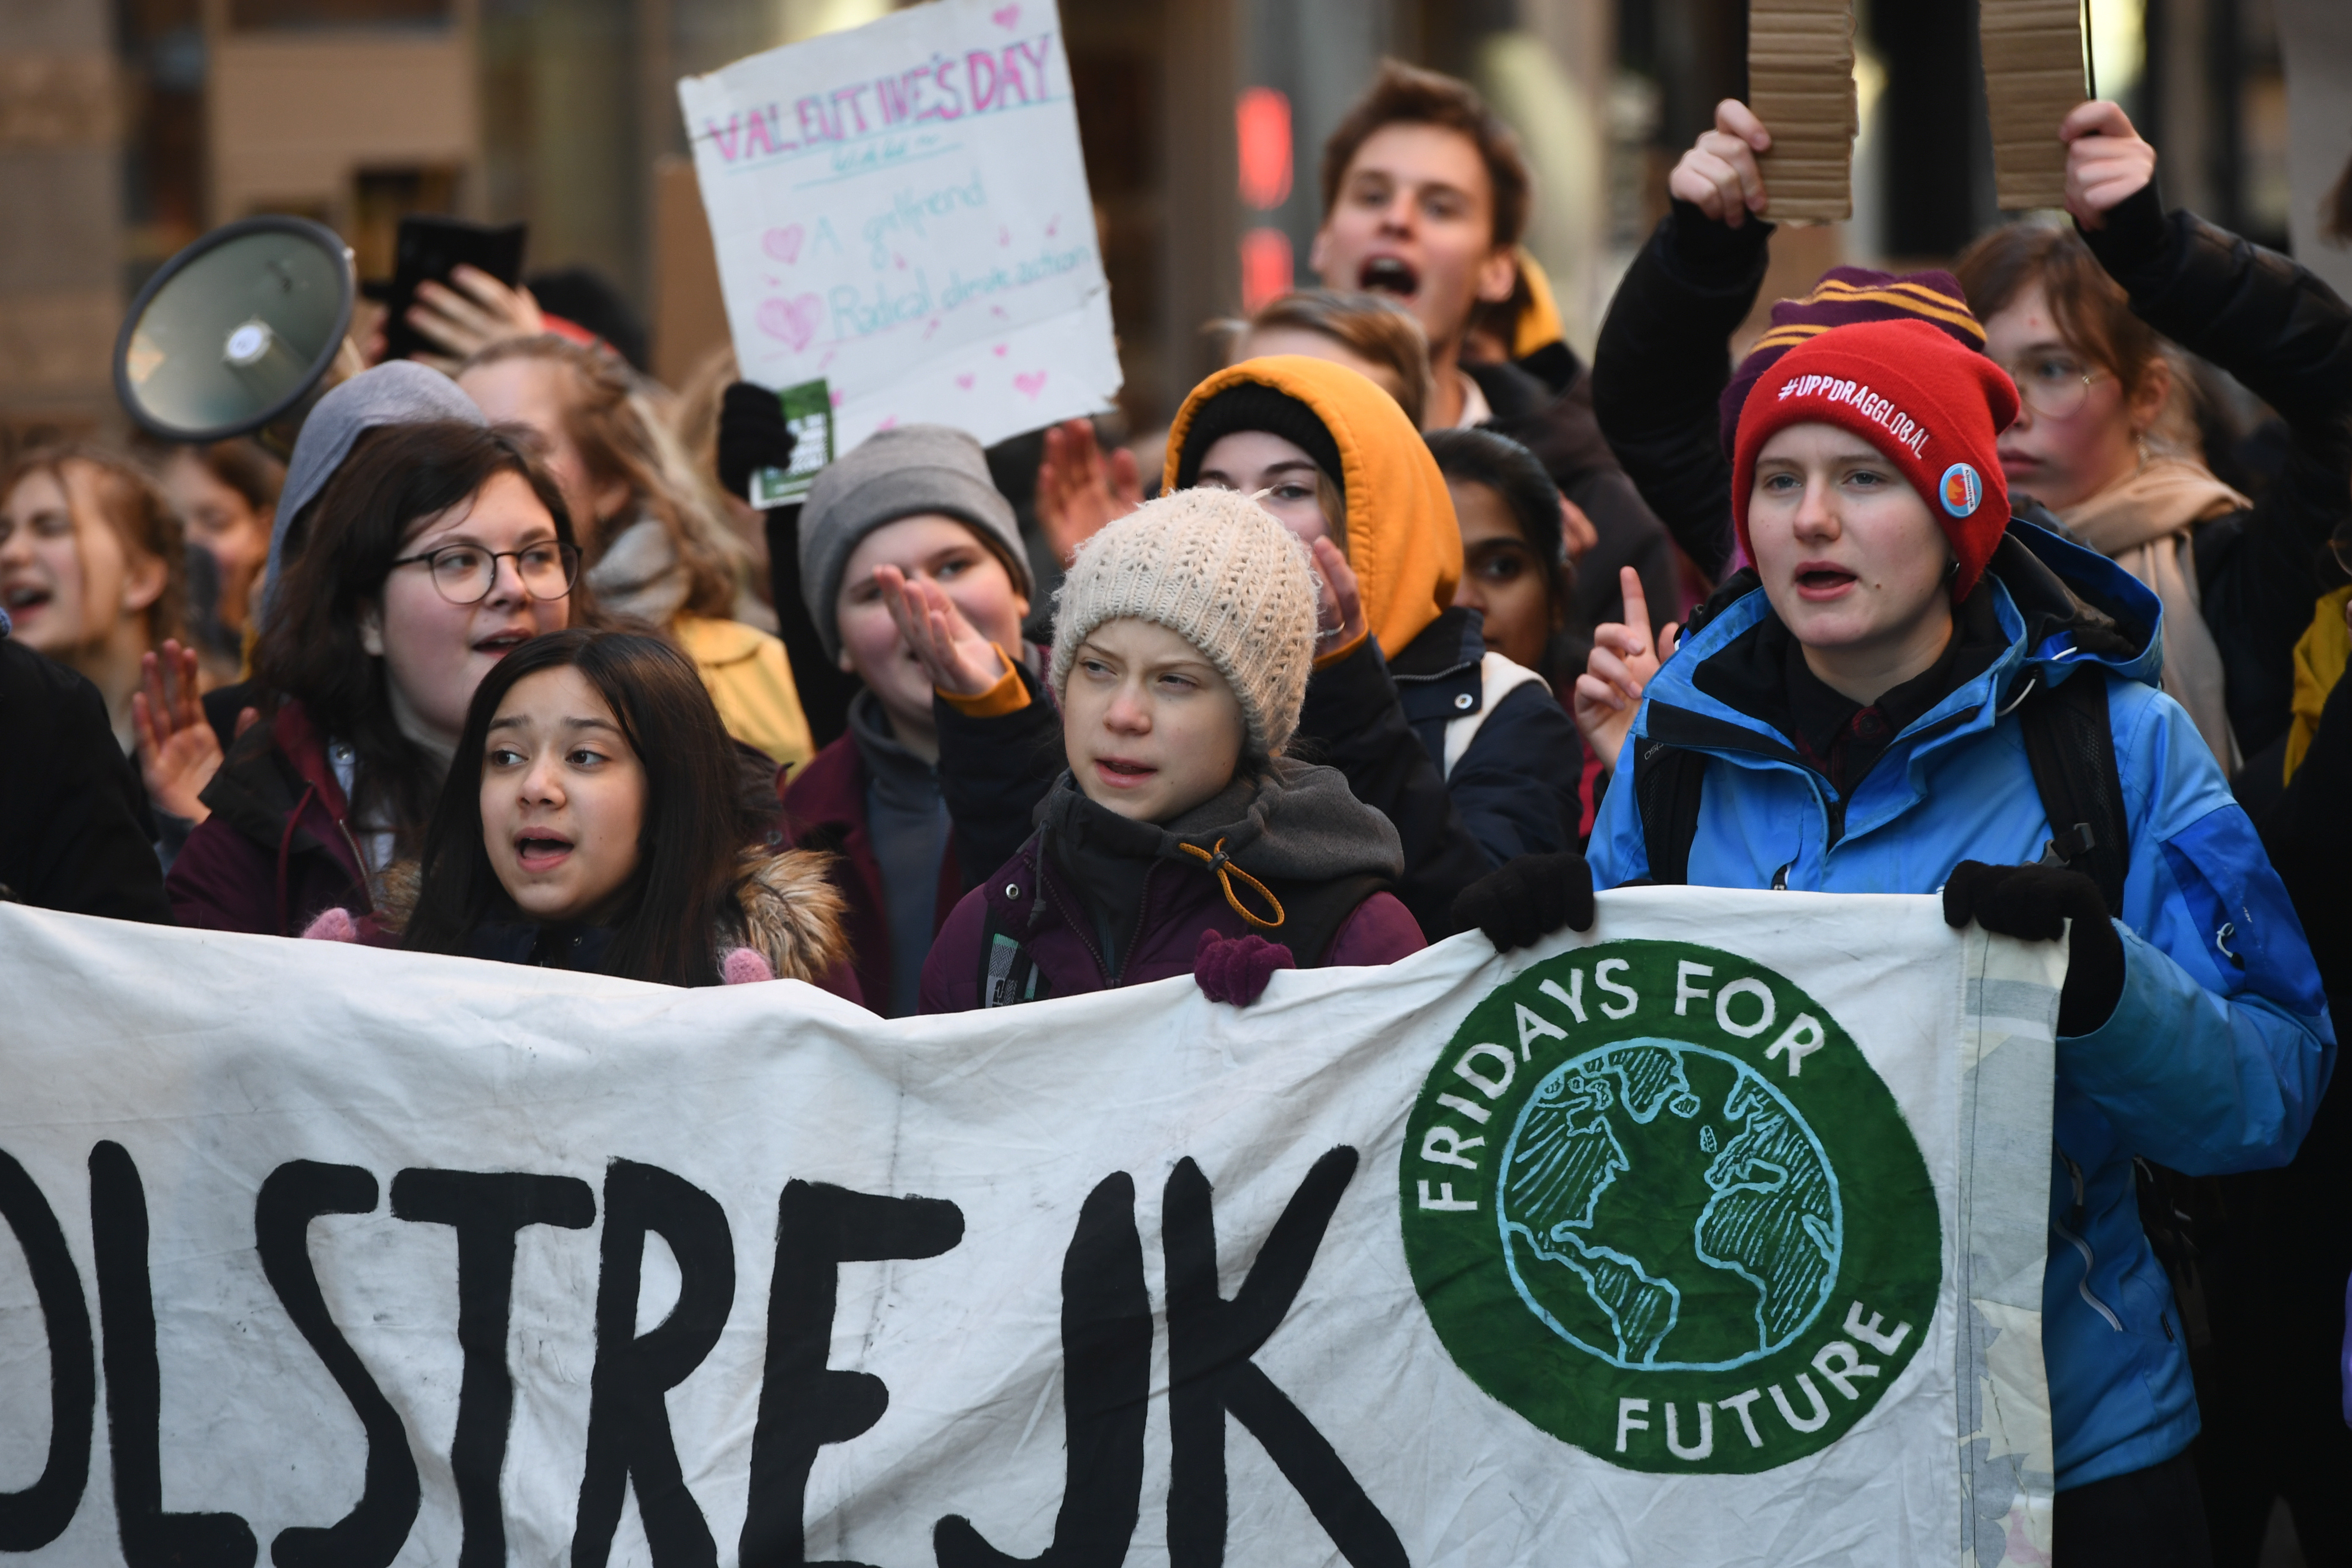 """Swedish environmental activist Greta Thunberg and other protesters attend the weekly """"Fridays For Future"""" climate strike, at Mynttorget in Stockholm, Sweden February 14, 2020   TT News Agency/Ali Lorestani via REUTERS      ATTENTION EDITORS - THIS IMAGE WAS PROVIDED BY A THIRD PARTY. SWEDEN OUT. NO COMMERCIAL OR EDITORIAL SALES IN SWEDEN. - RC2D0F93I96I"""